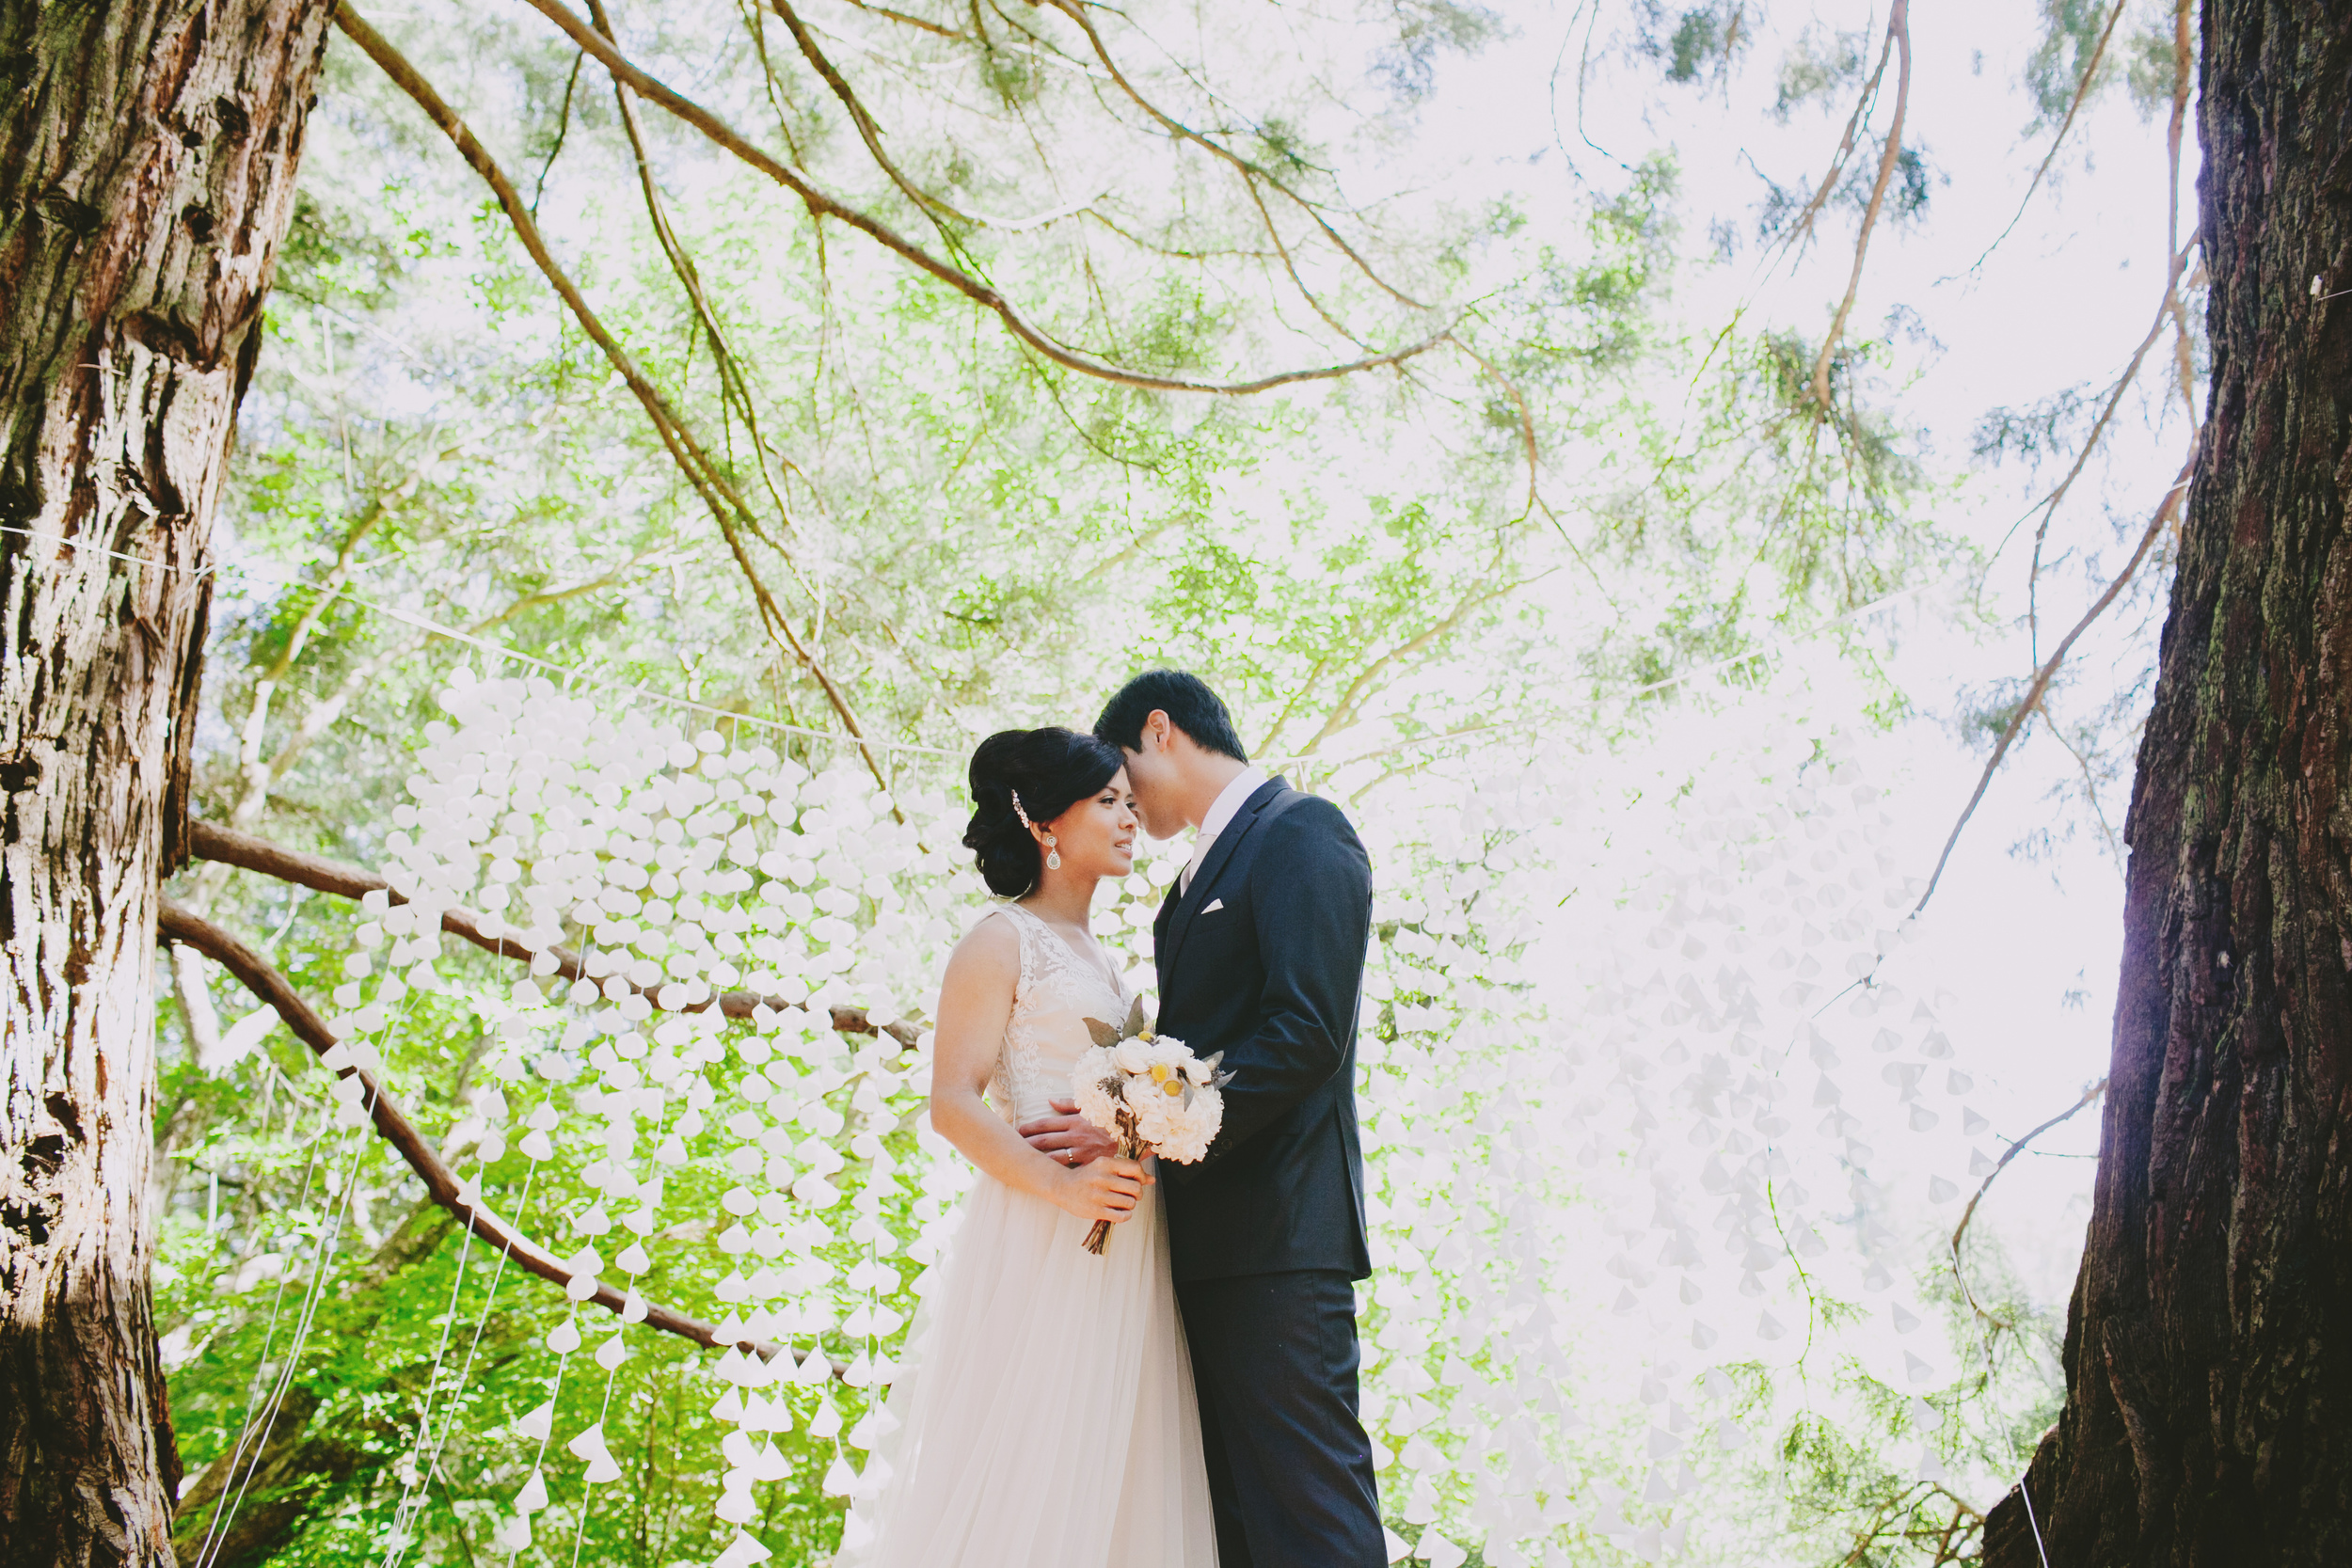 Tilden_Wedding_Berkeley-13.JPG